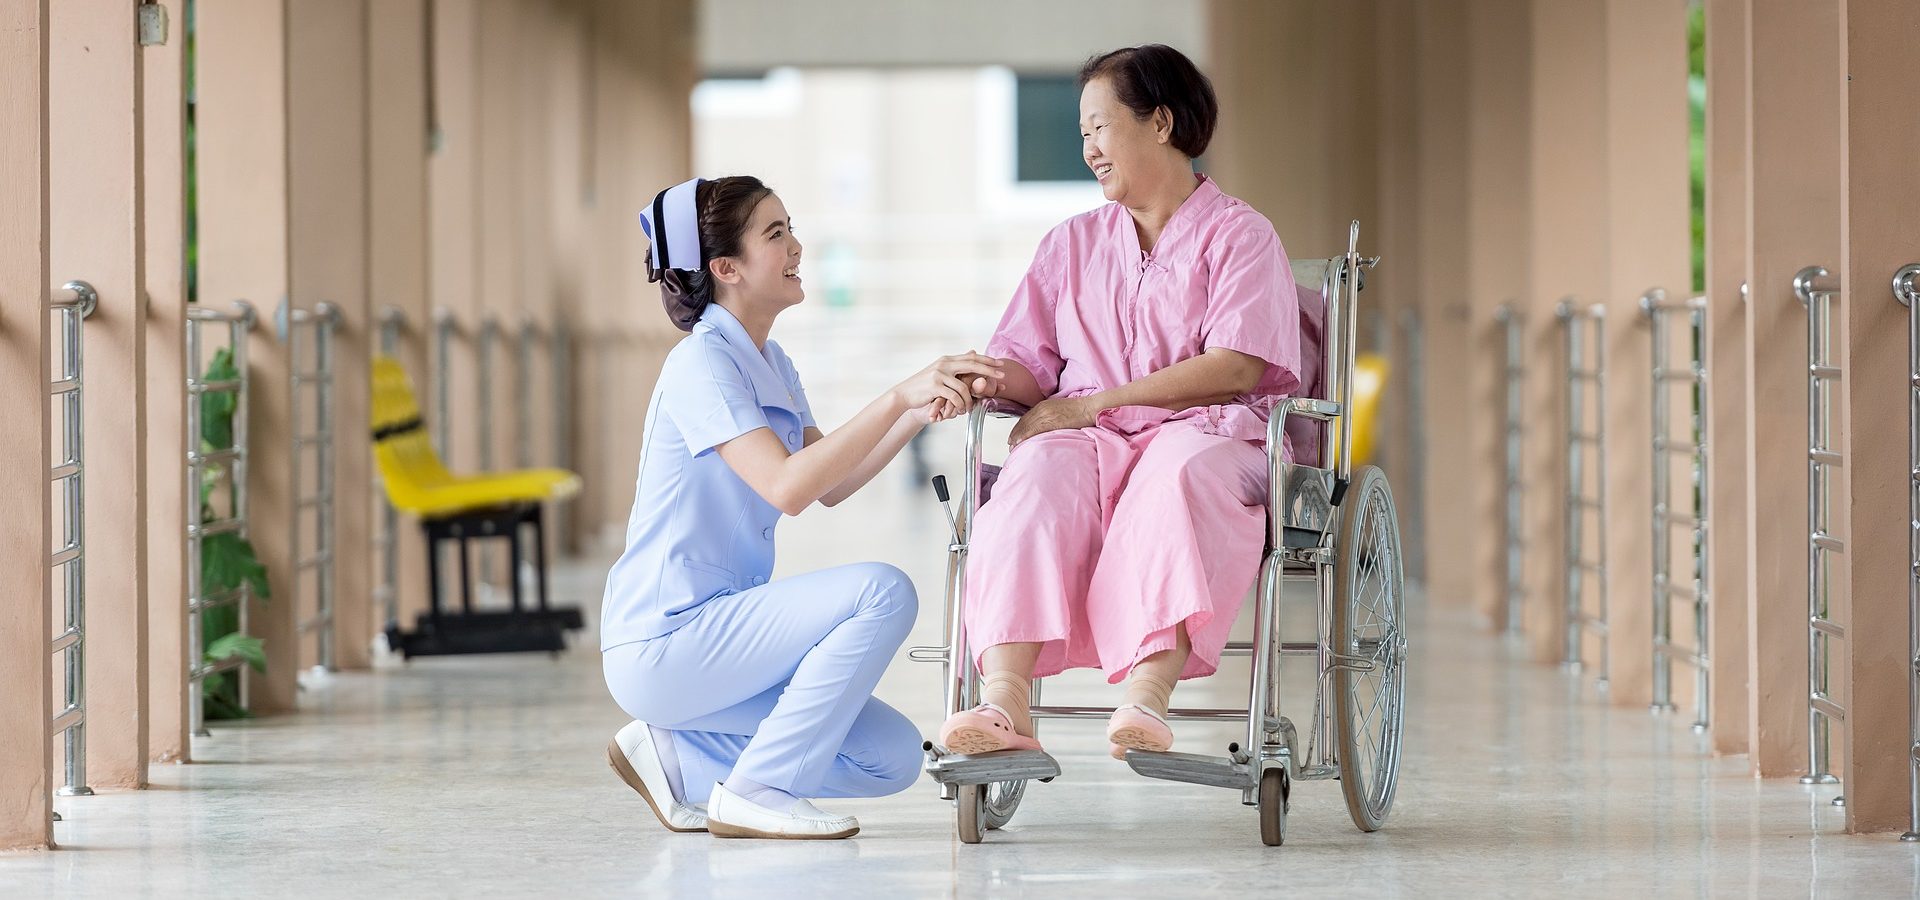 Nursing Home Health Care